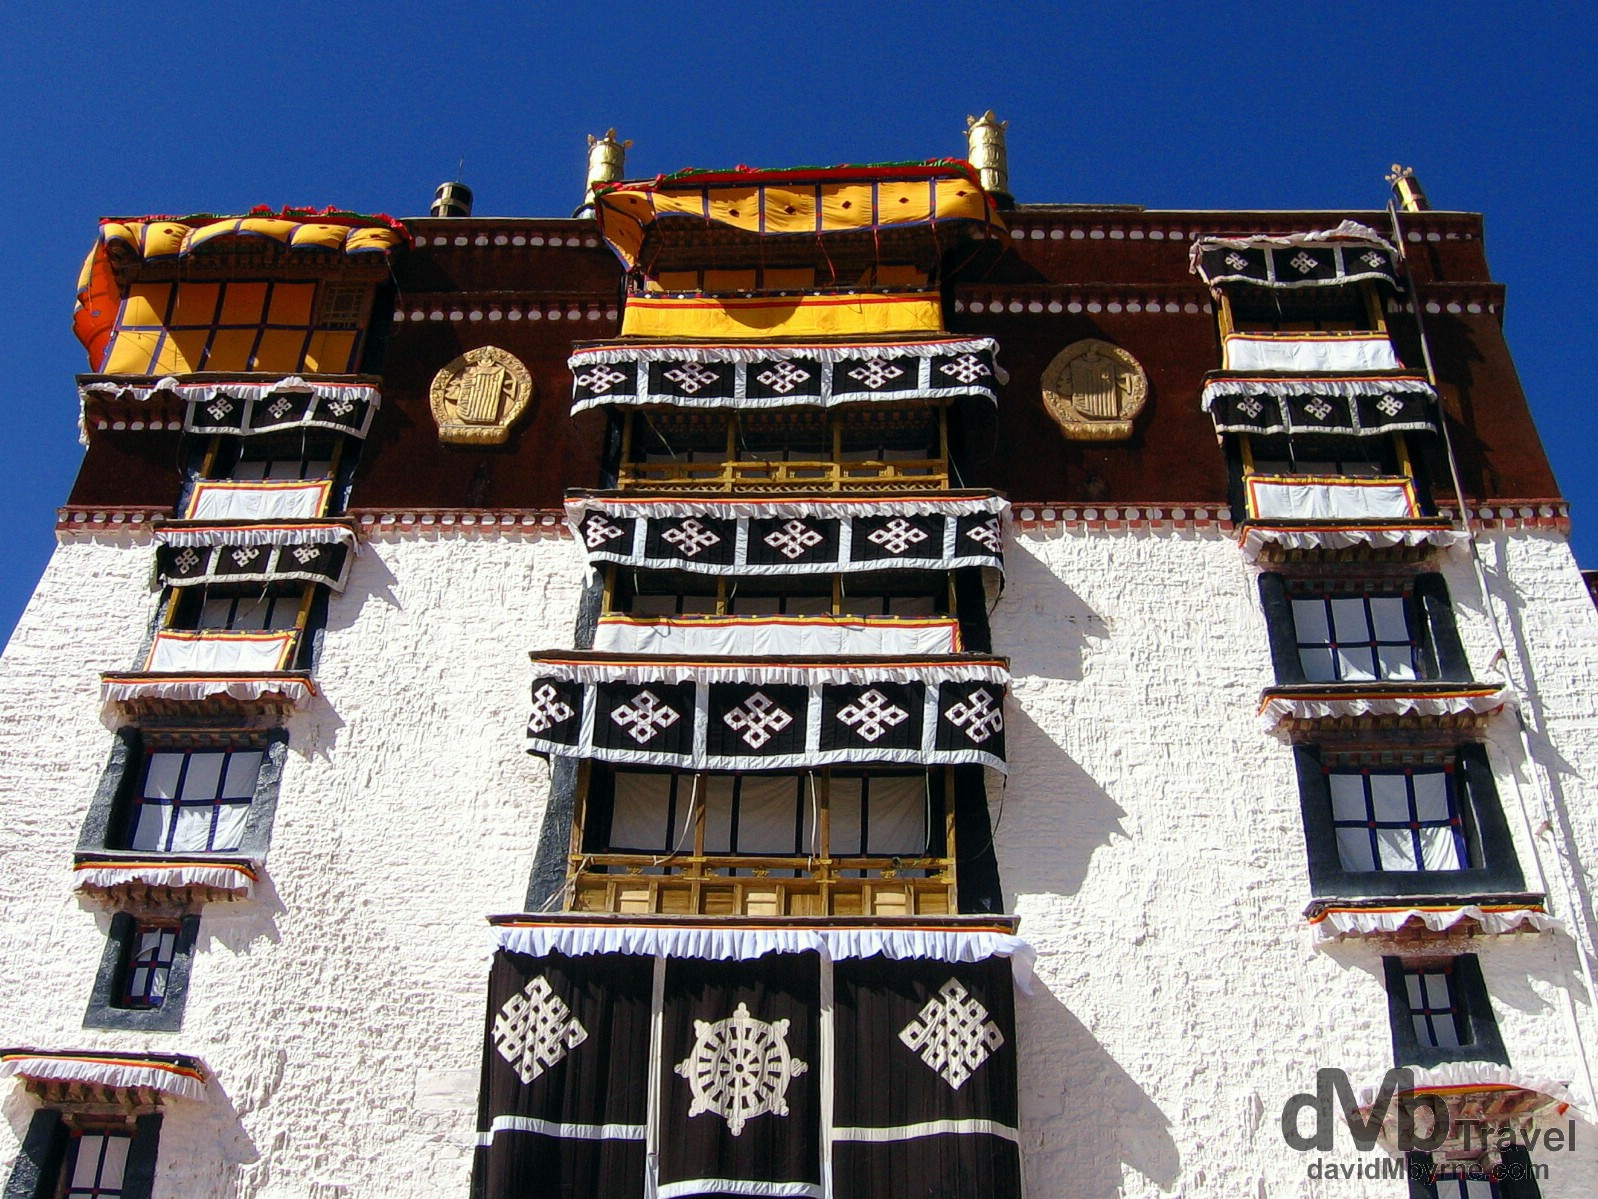 Architecture in Lhasa, Tibet. February 28th, 2008.